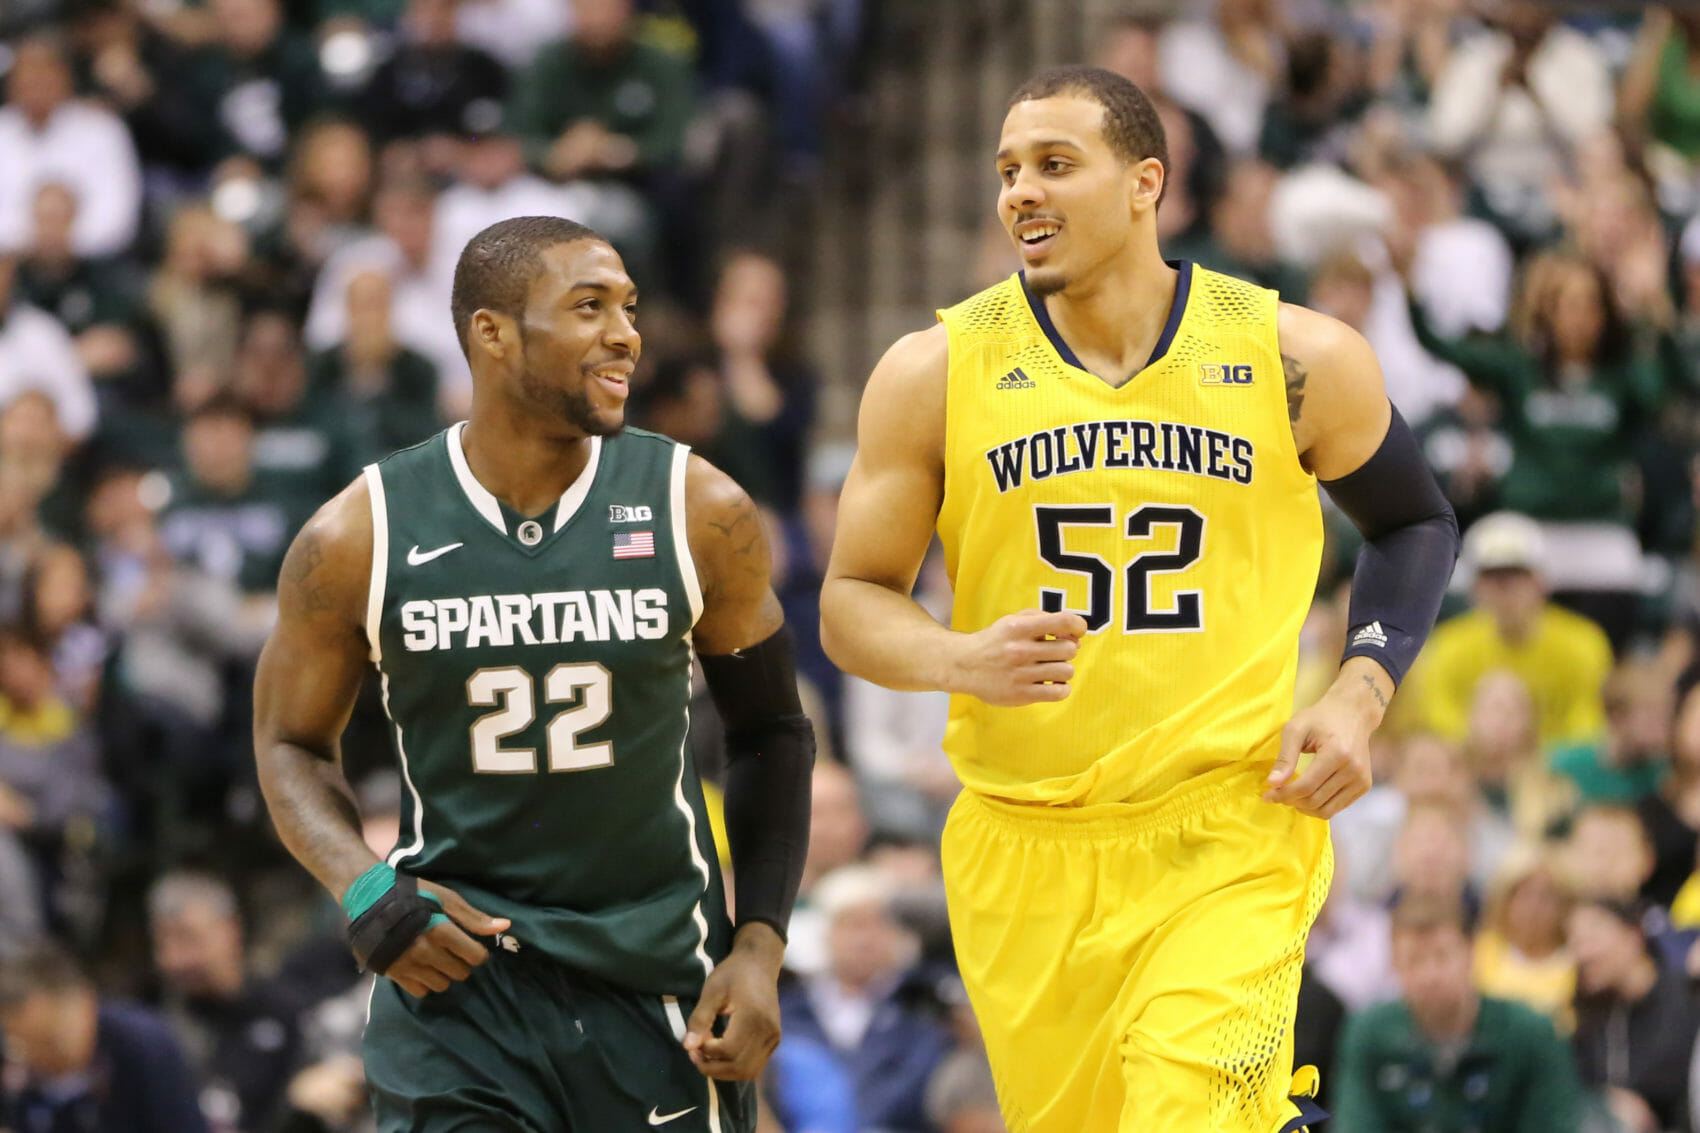 Michigan State 69, Michigan 55-15